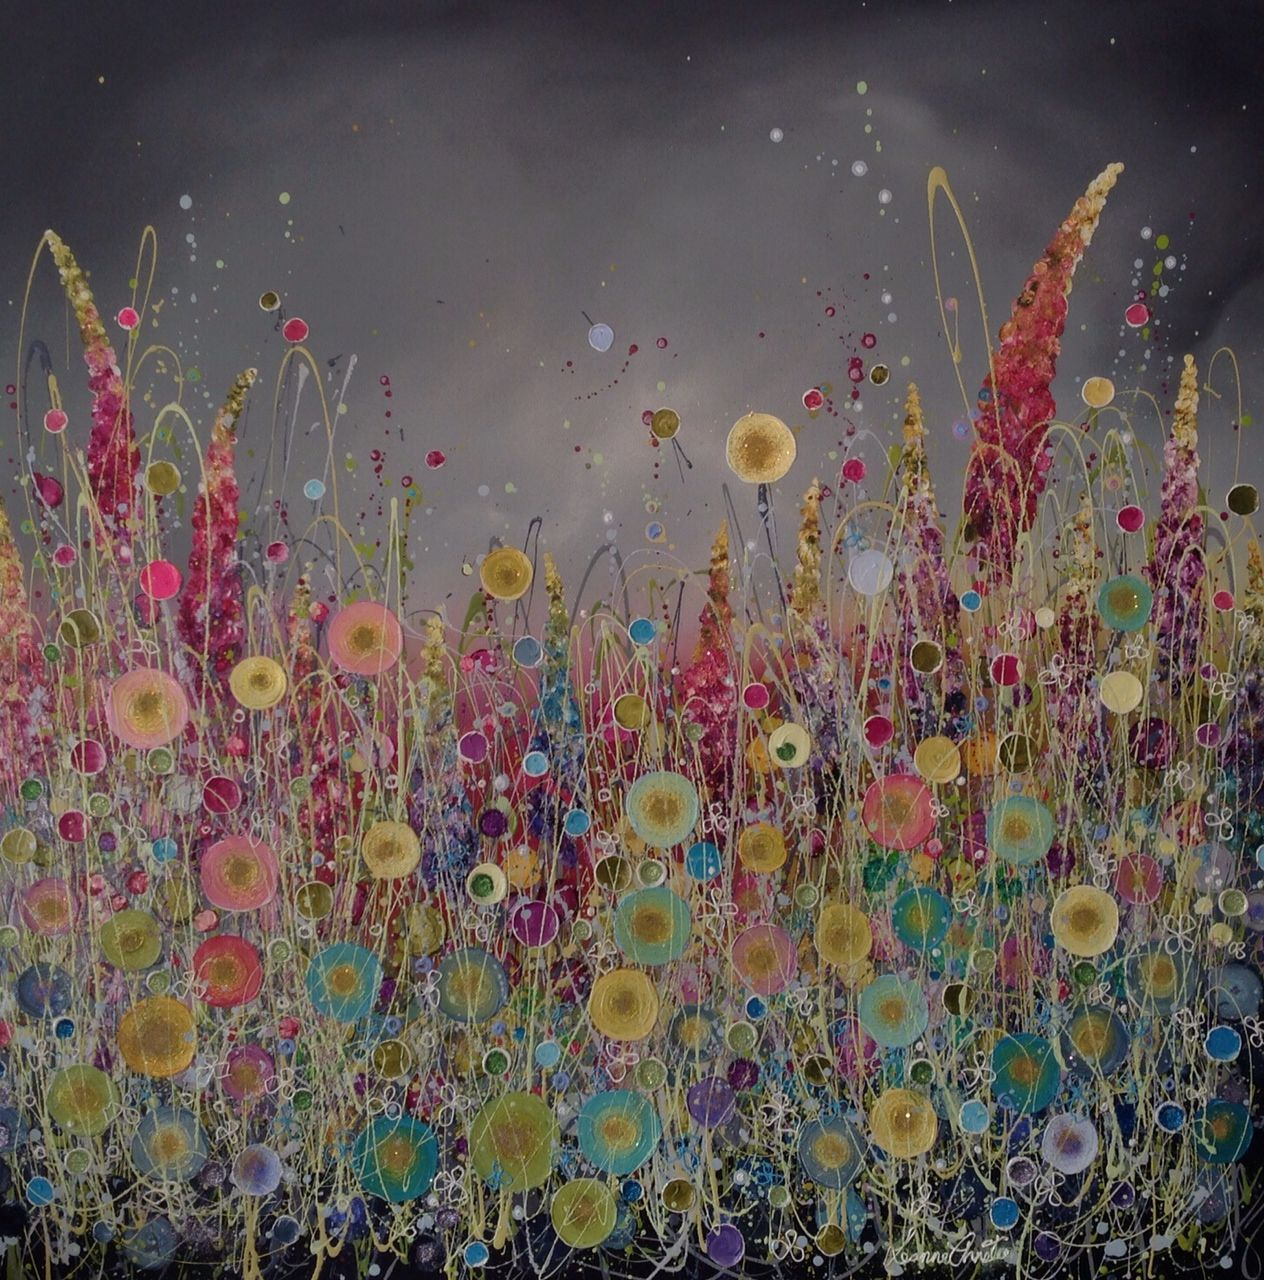 Dreamcatcher from @lchristieart stunning dramatic sky!